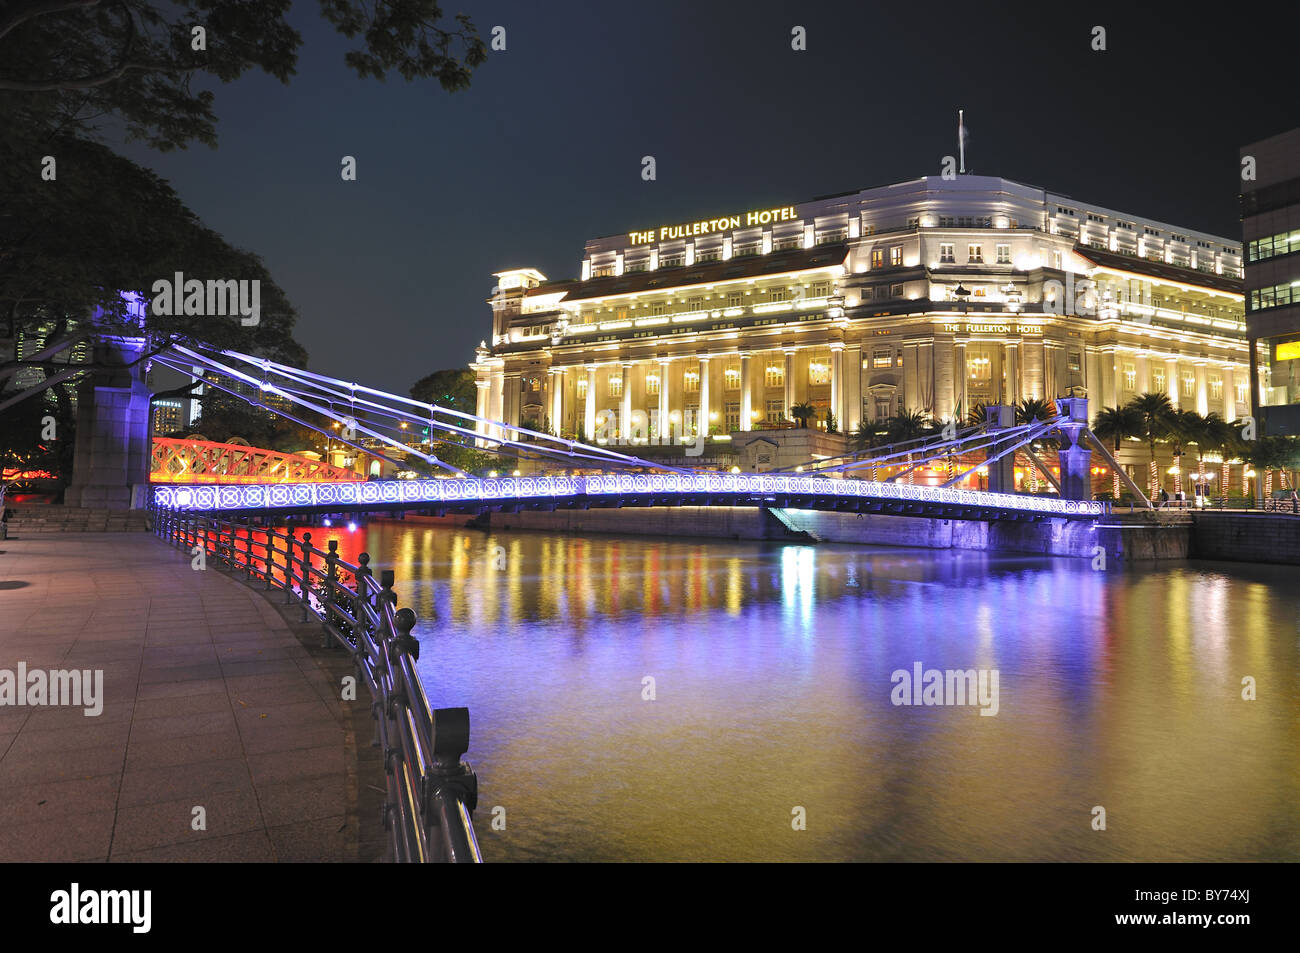 The Fullerton Hotel and the Cavenagh Bridge aglow in festive lights. - Stock Image